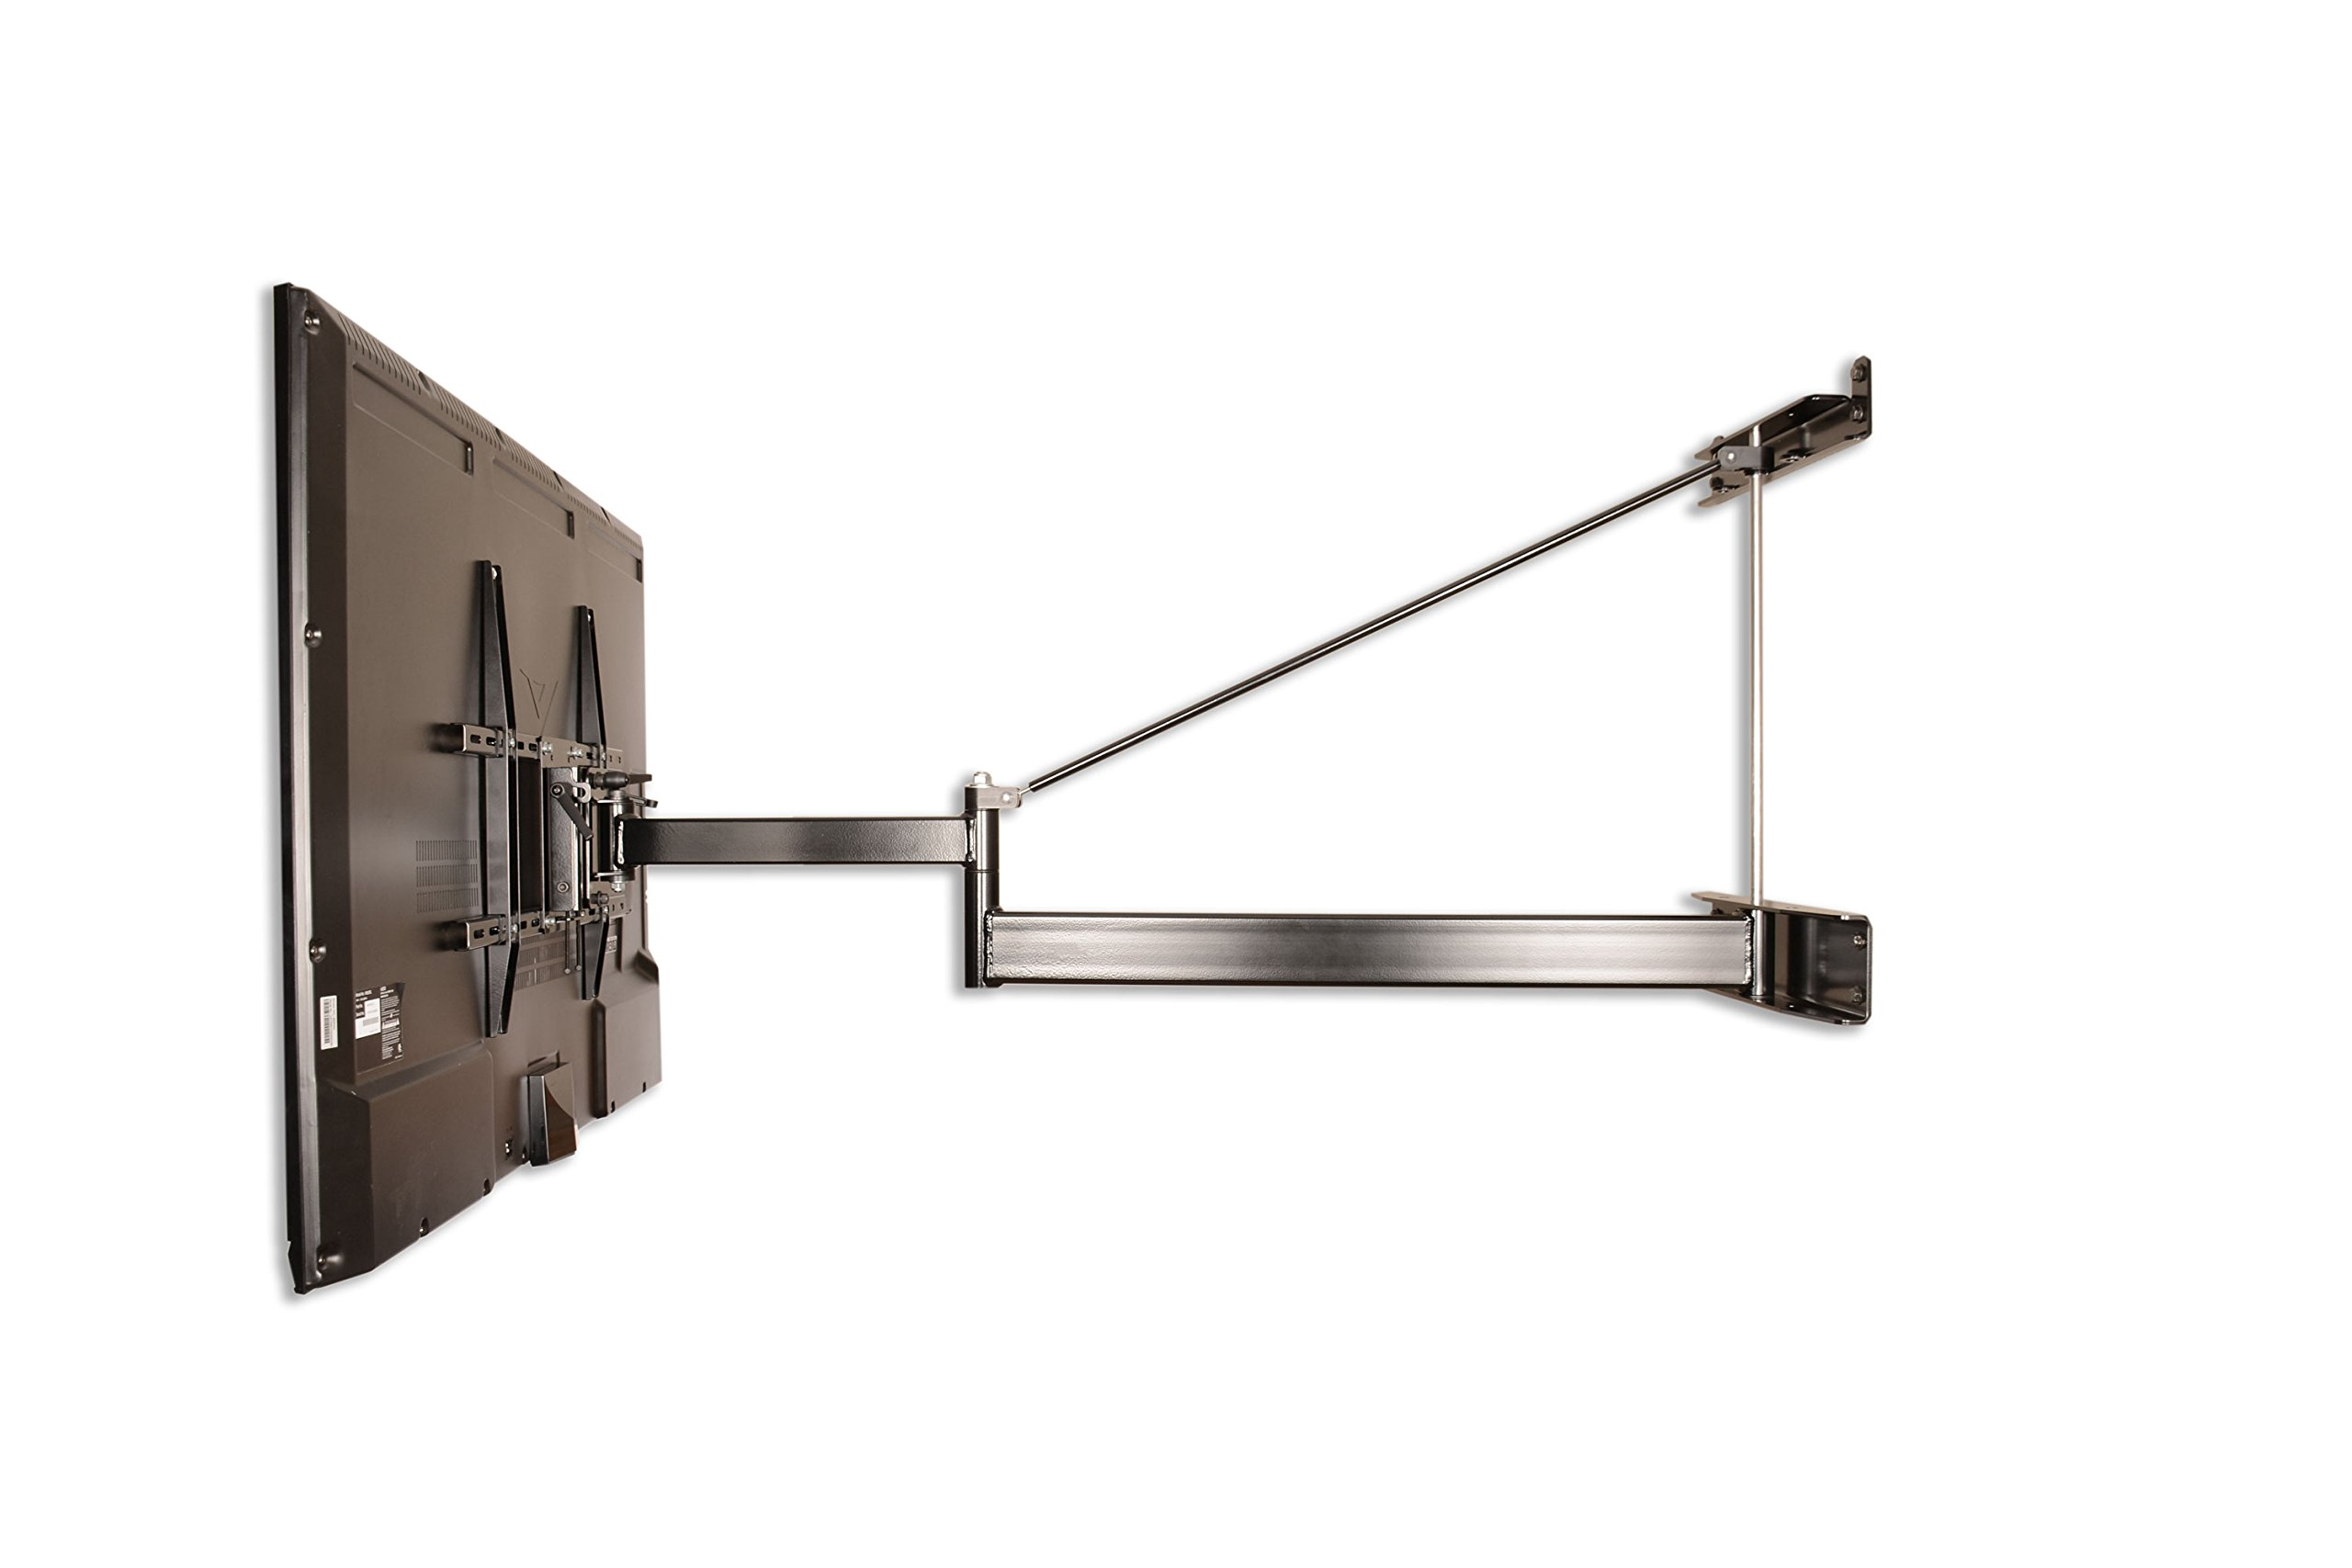 Extra Long Arm TV Mount, 55″-85″ Panel TVs, Extends 46″